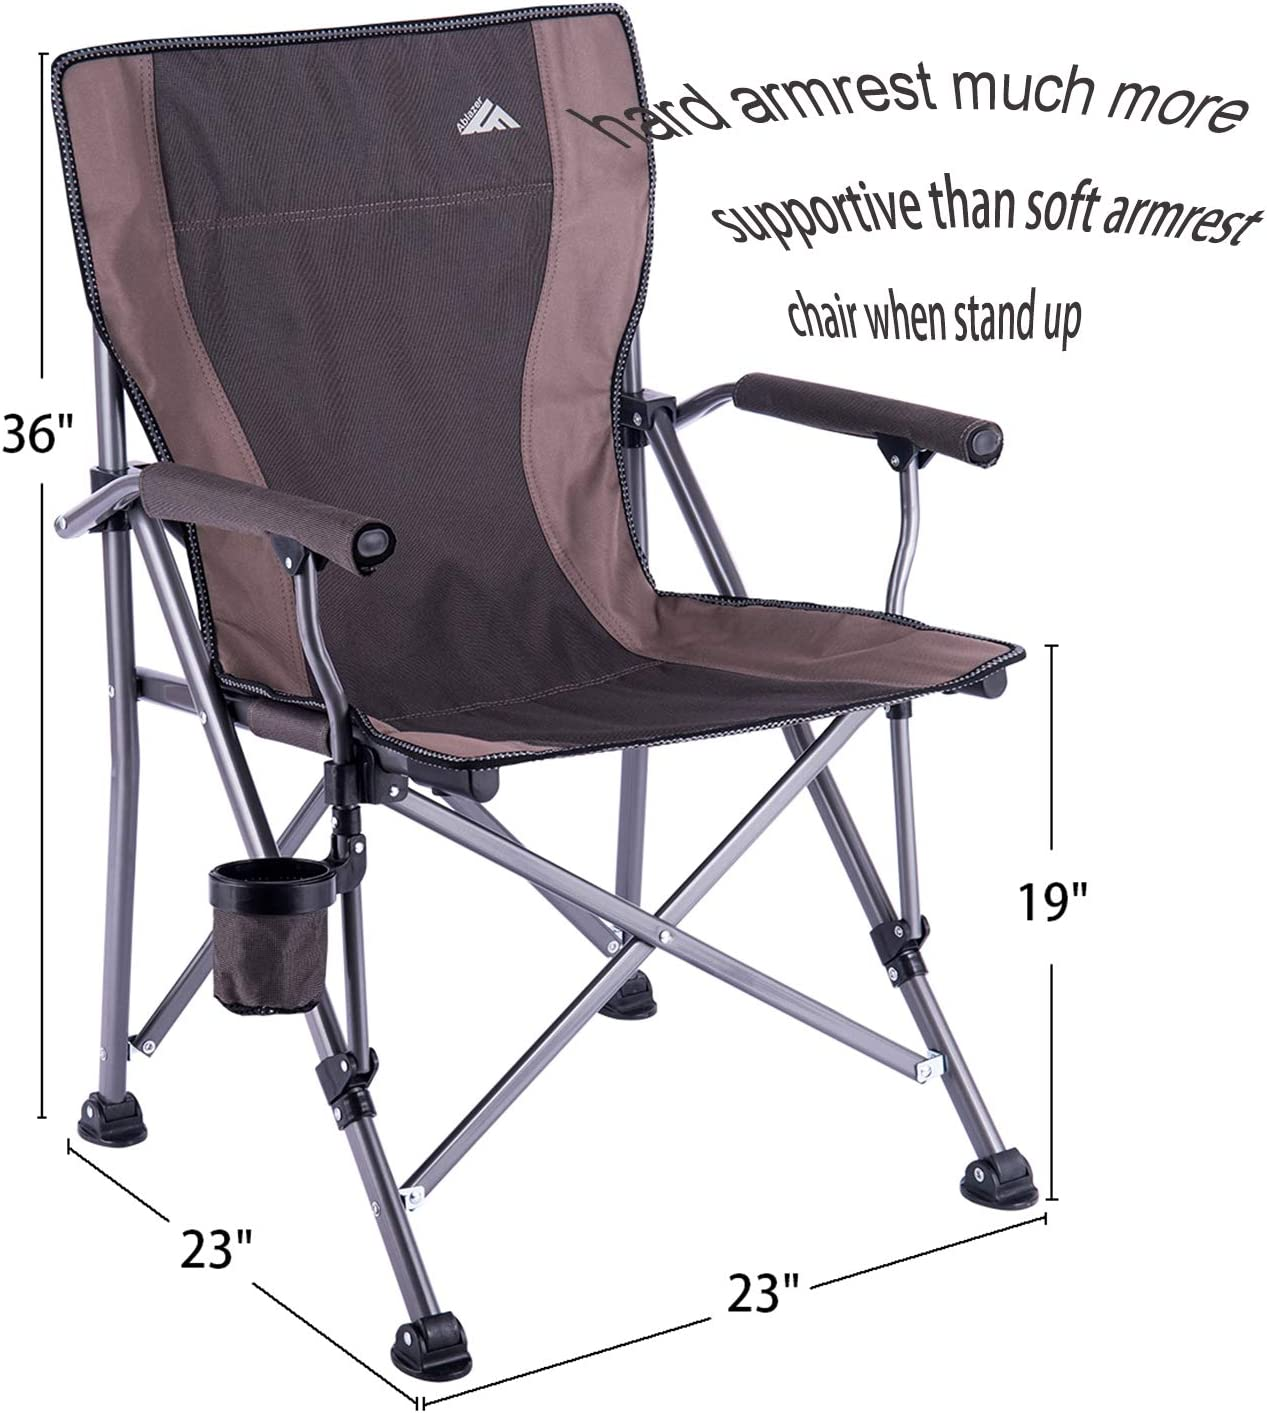 Amazon Com Folding Camping Chair Portable Camp Chair For Adults Supports 300 Lbs Oversized Heavy Duty Folding Camping Chair With Cup Holder Lightweight Lawn Chair For Outdoor Travel Picnic Hiking Straight Back